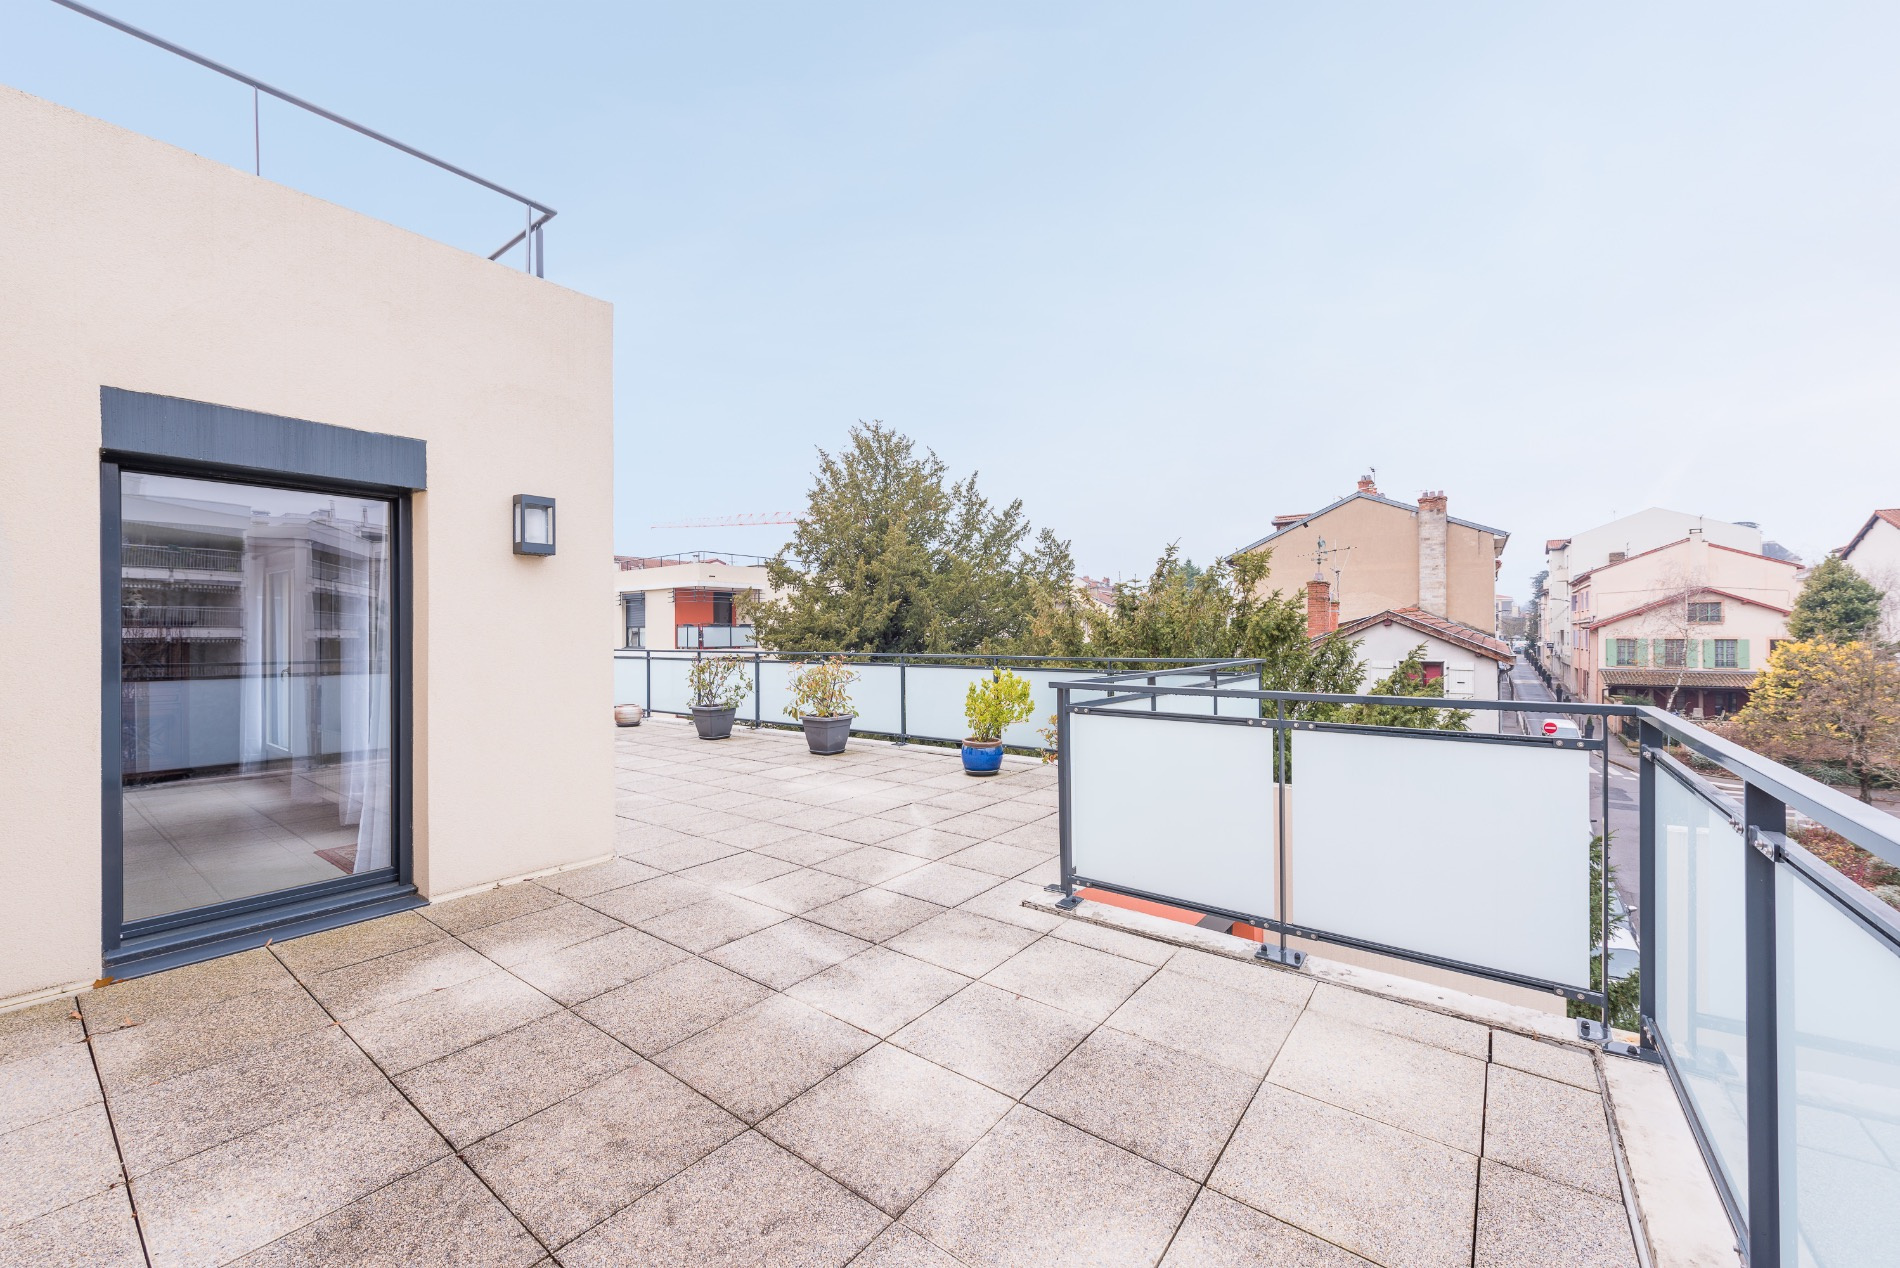 Vente appartement toit terrasse centre ecully for Appartement toit terrasse